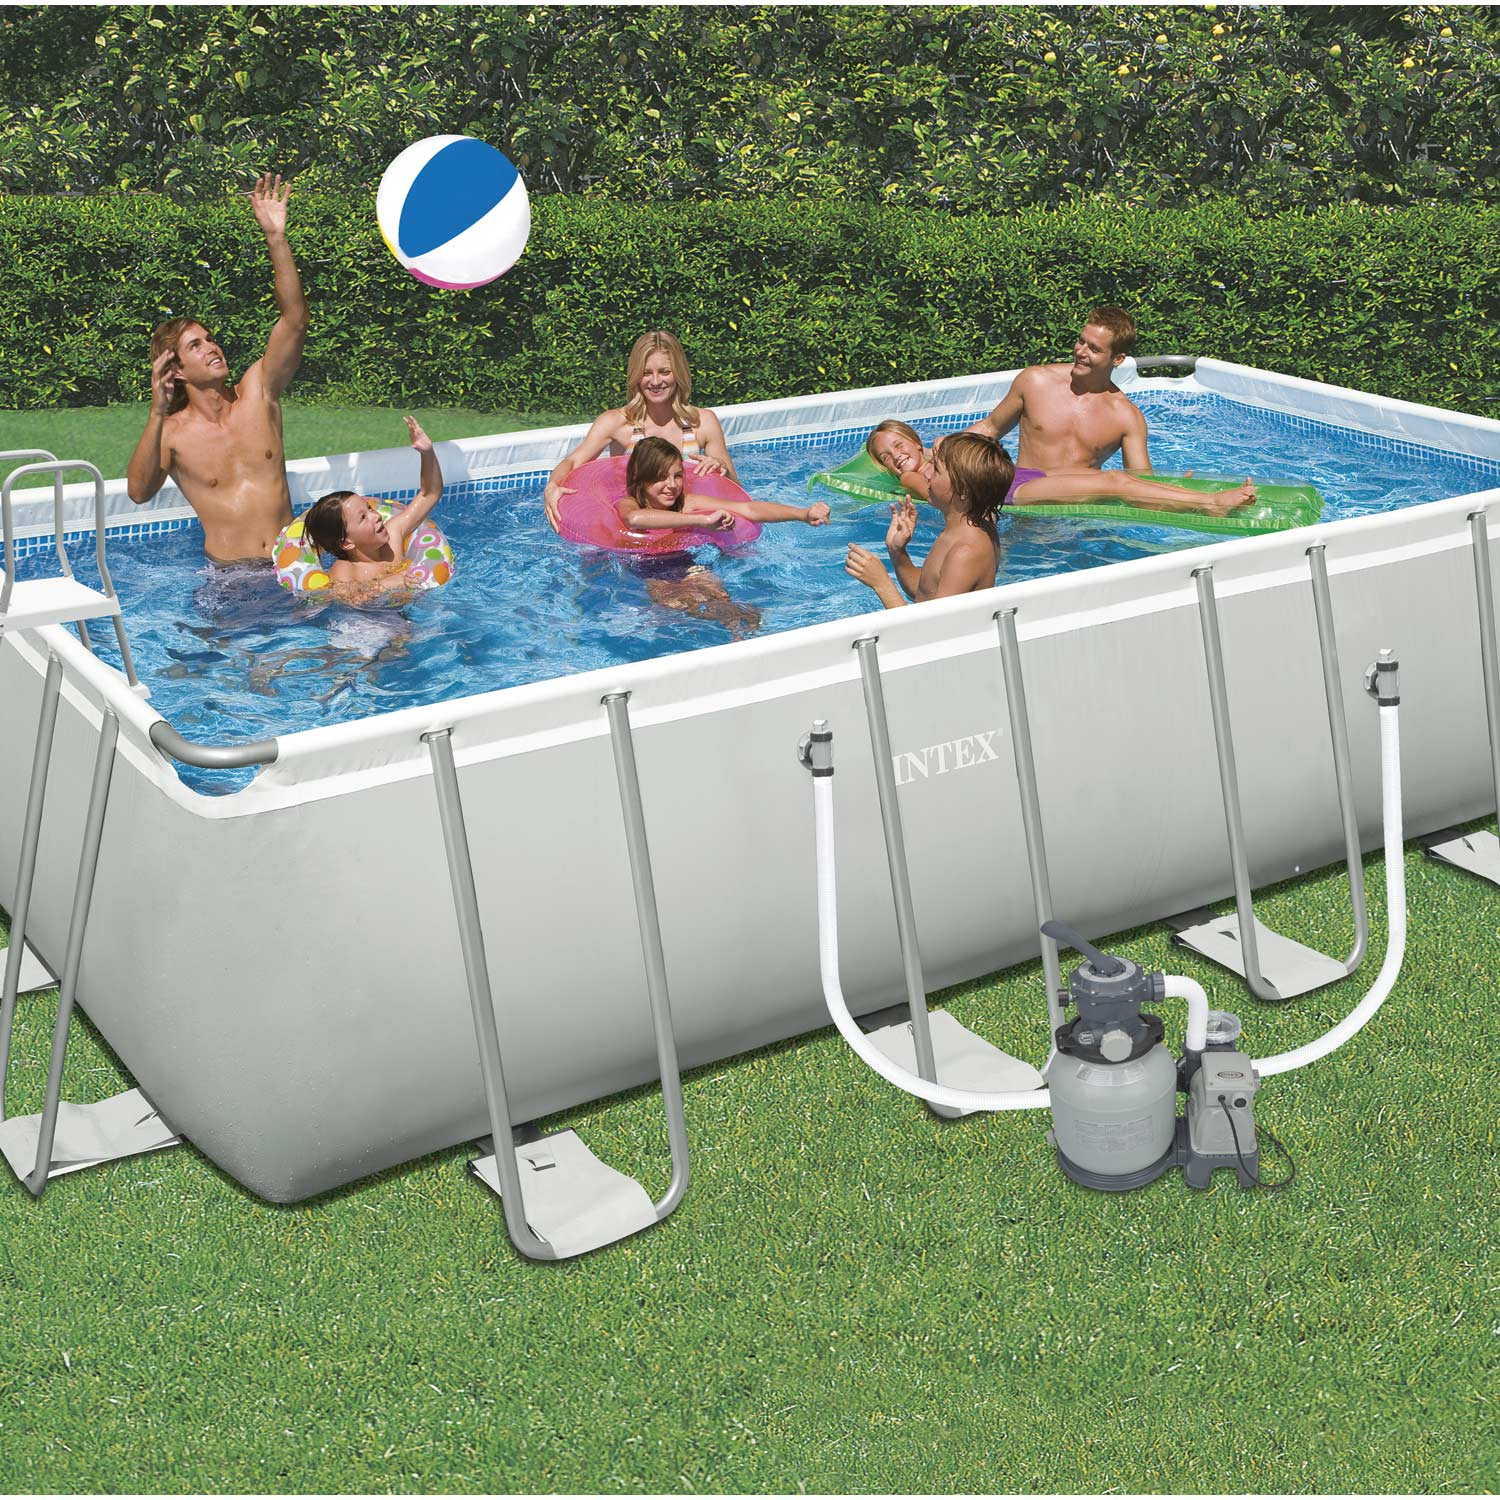 Piscine hors sol autoportante tubulaire ultra silver intex l leroy merlin for Piscines hors sol leroy merlin